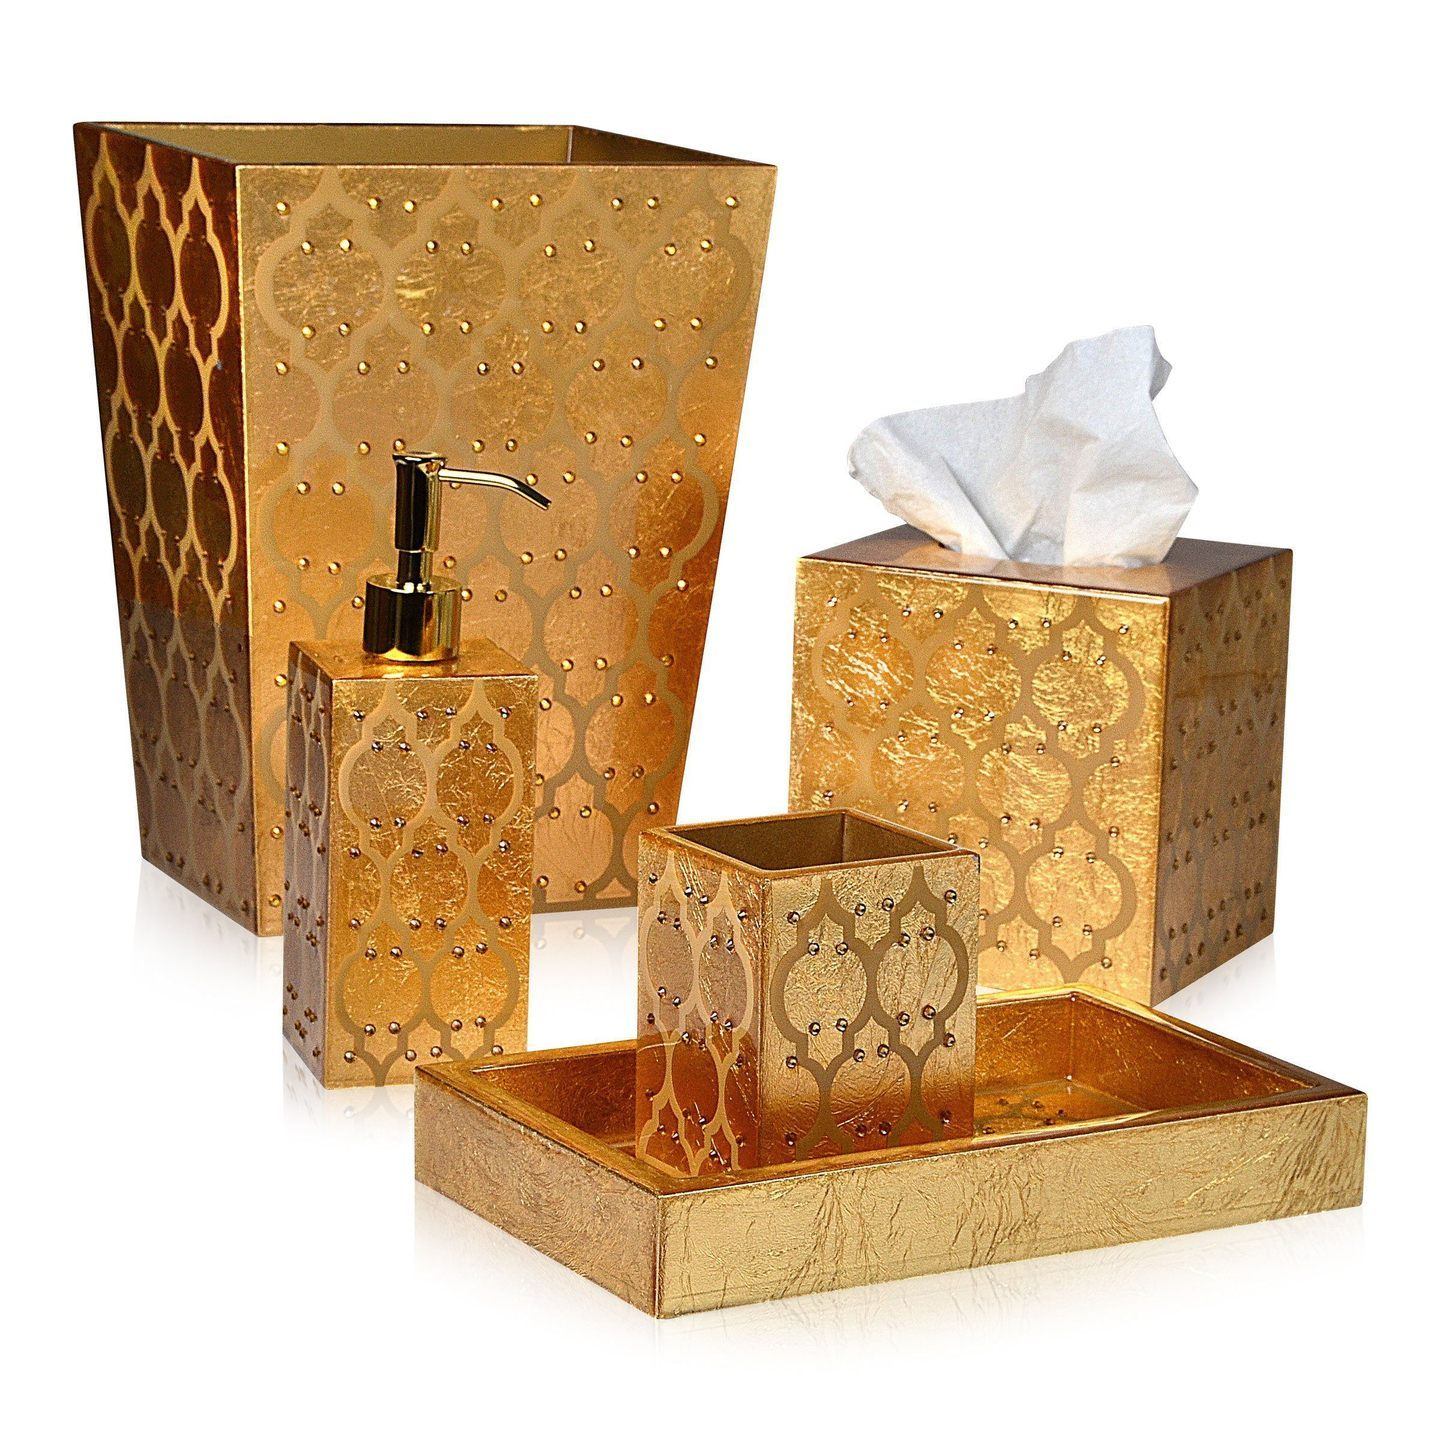 Arabesque Gold Bath Accessories by Mike + Ally